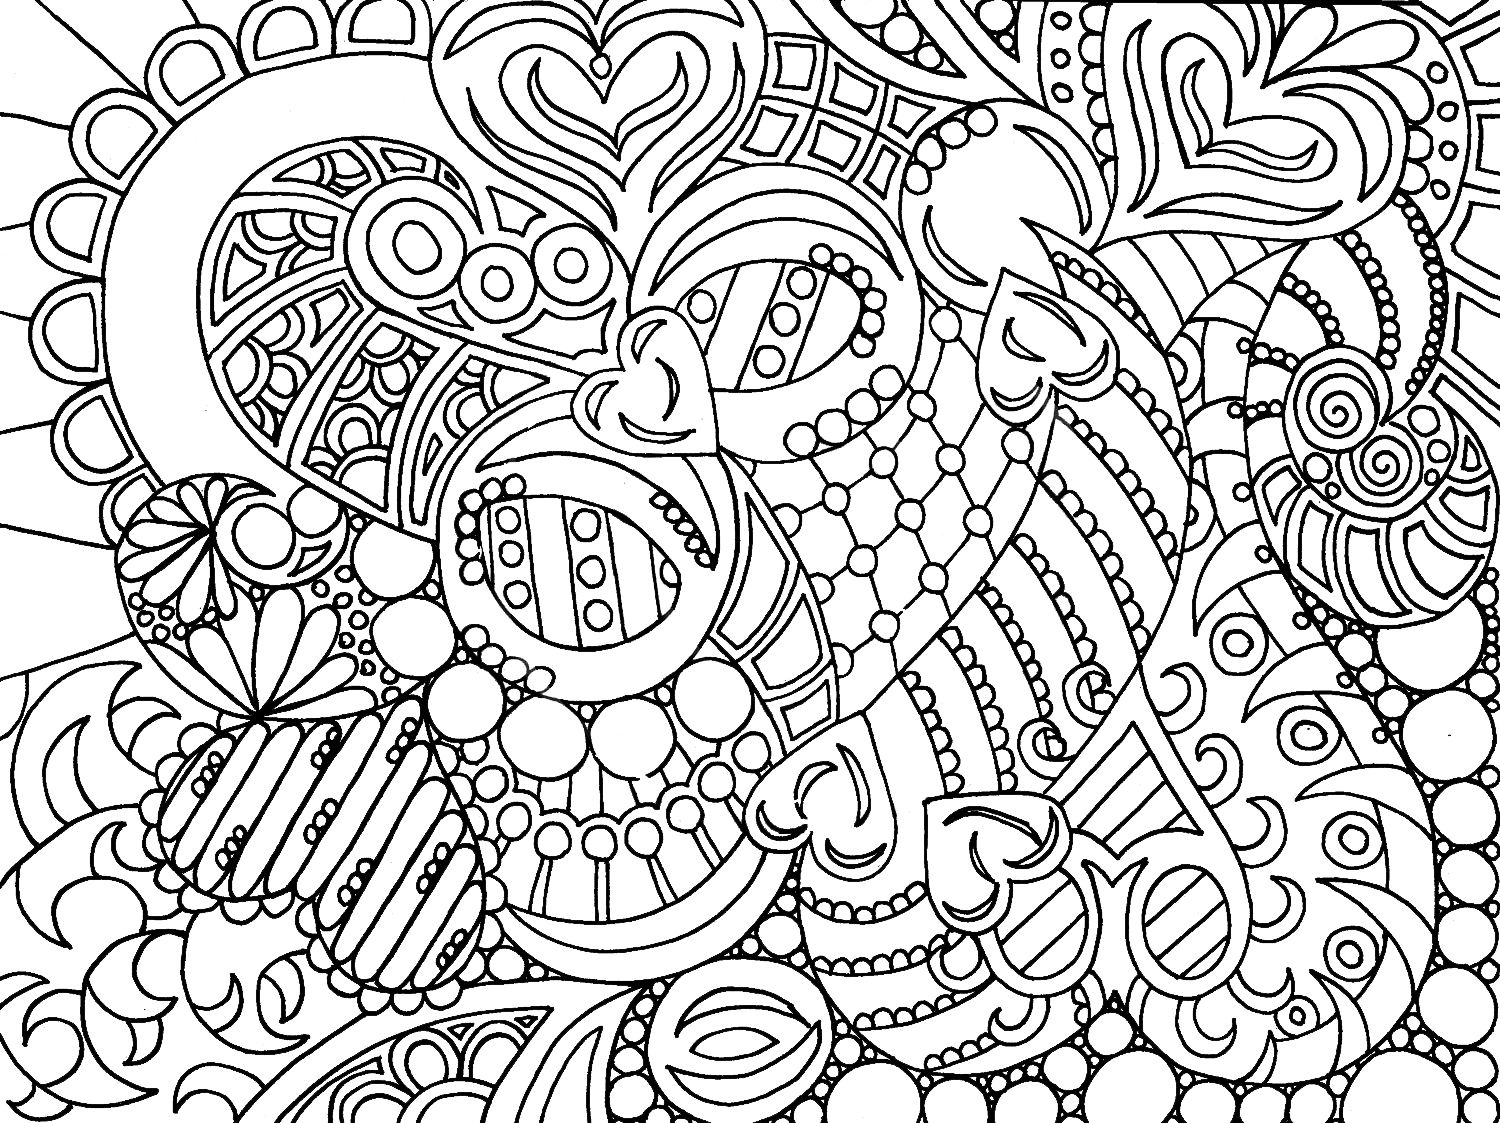 Free online holiday coloring pages - Abstract Coloring Pages Free Online Printable Coloring Pages Sheets For Kids Get The Latest Free Abstract Coloring Pages Images Favorite Coloring Pages